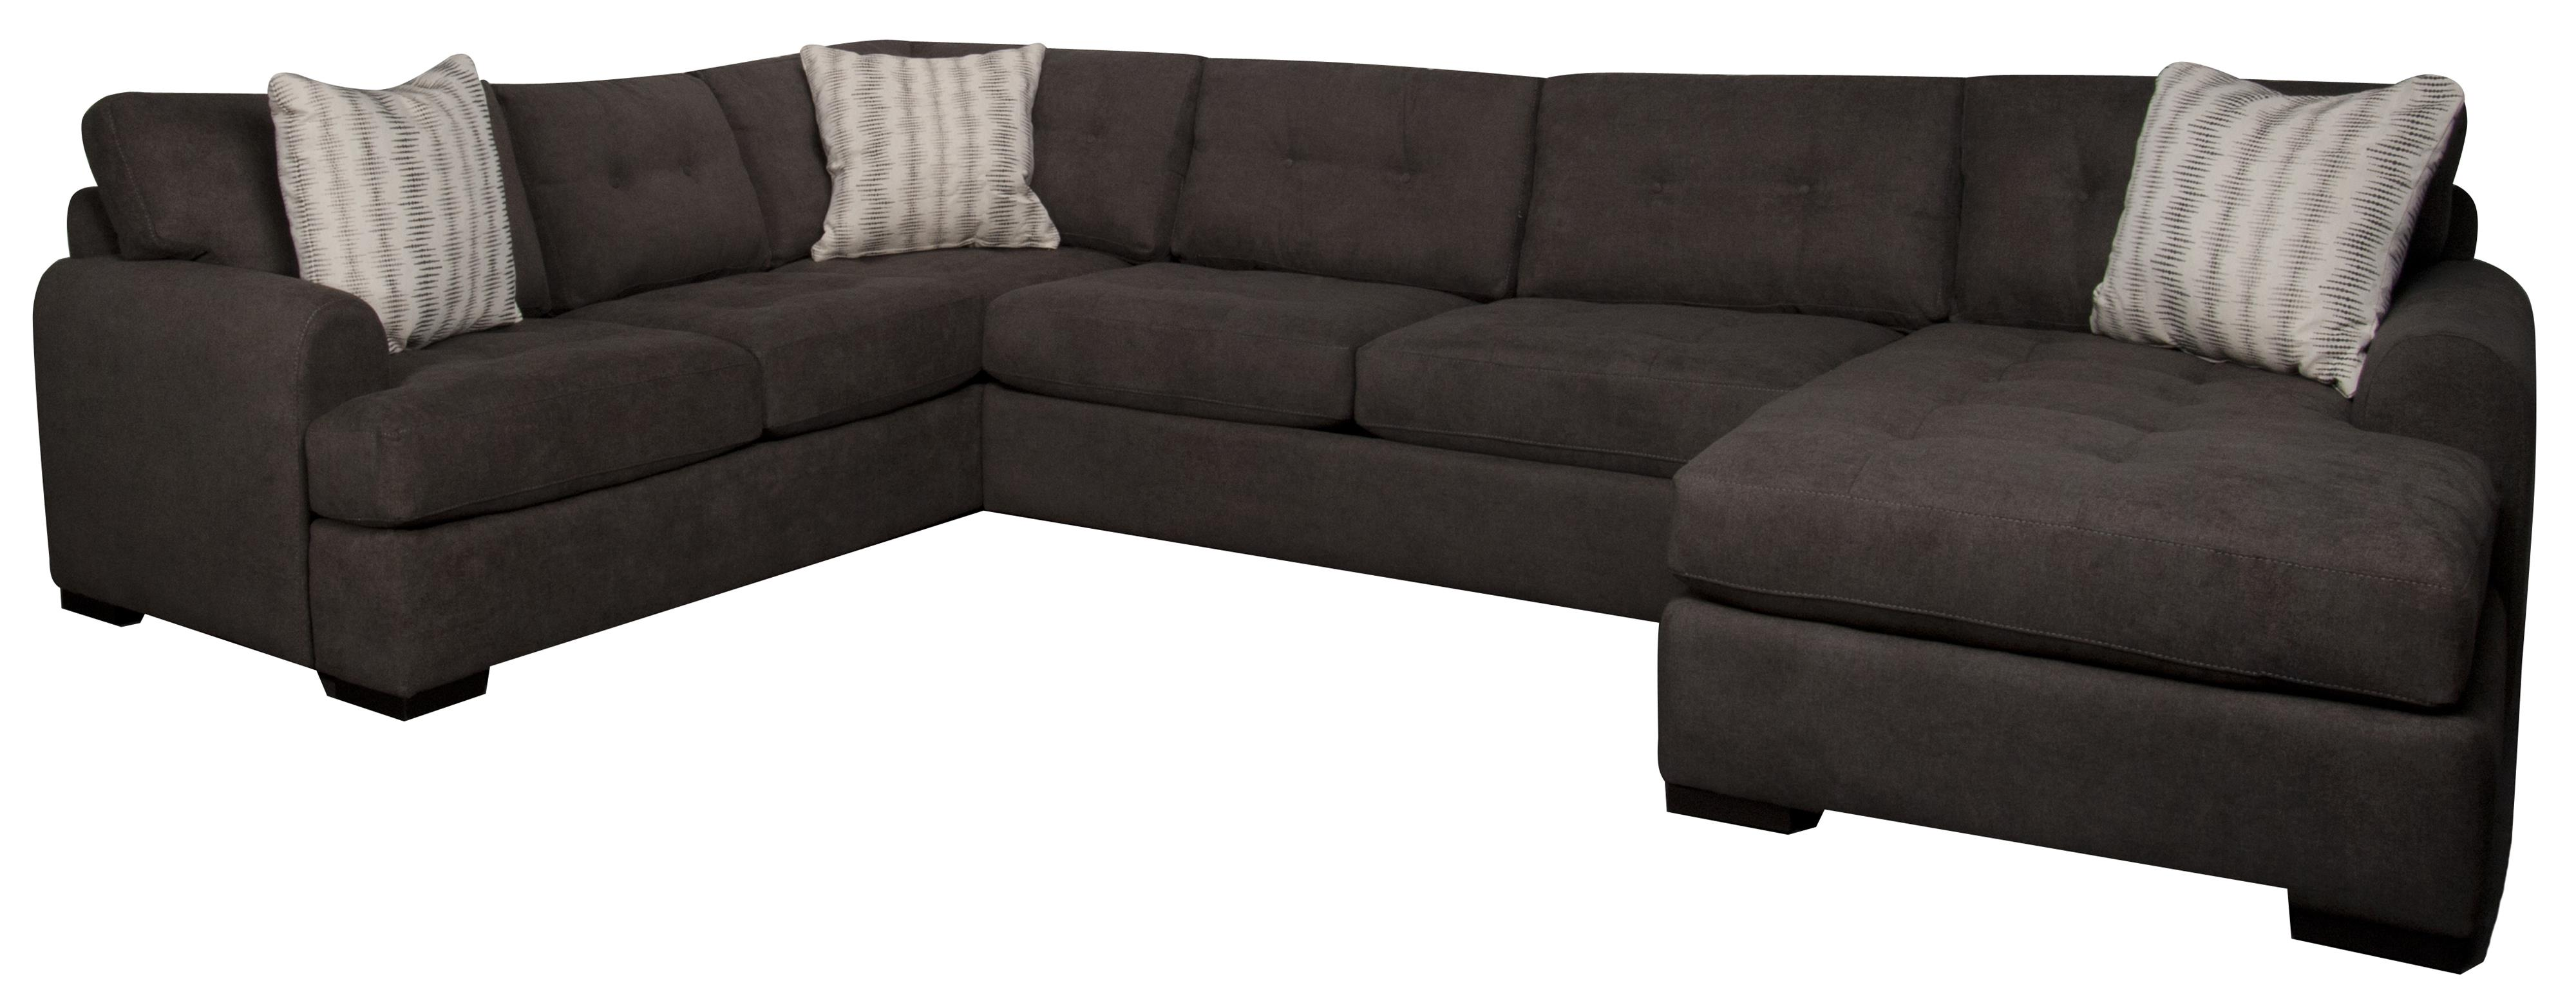 Santa Monica Carson Carson 3-Piece Sectional - Item Number: 134805897